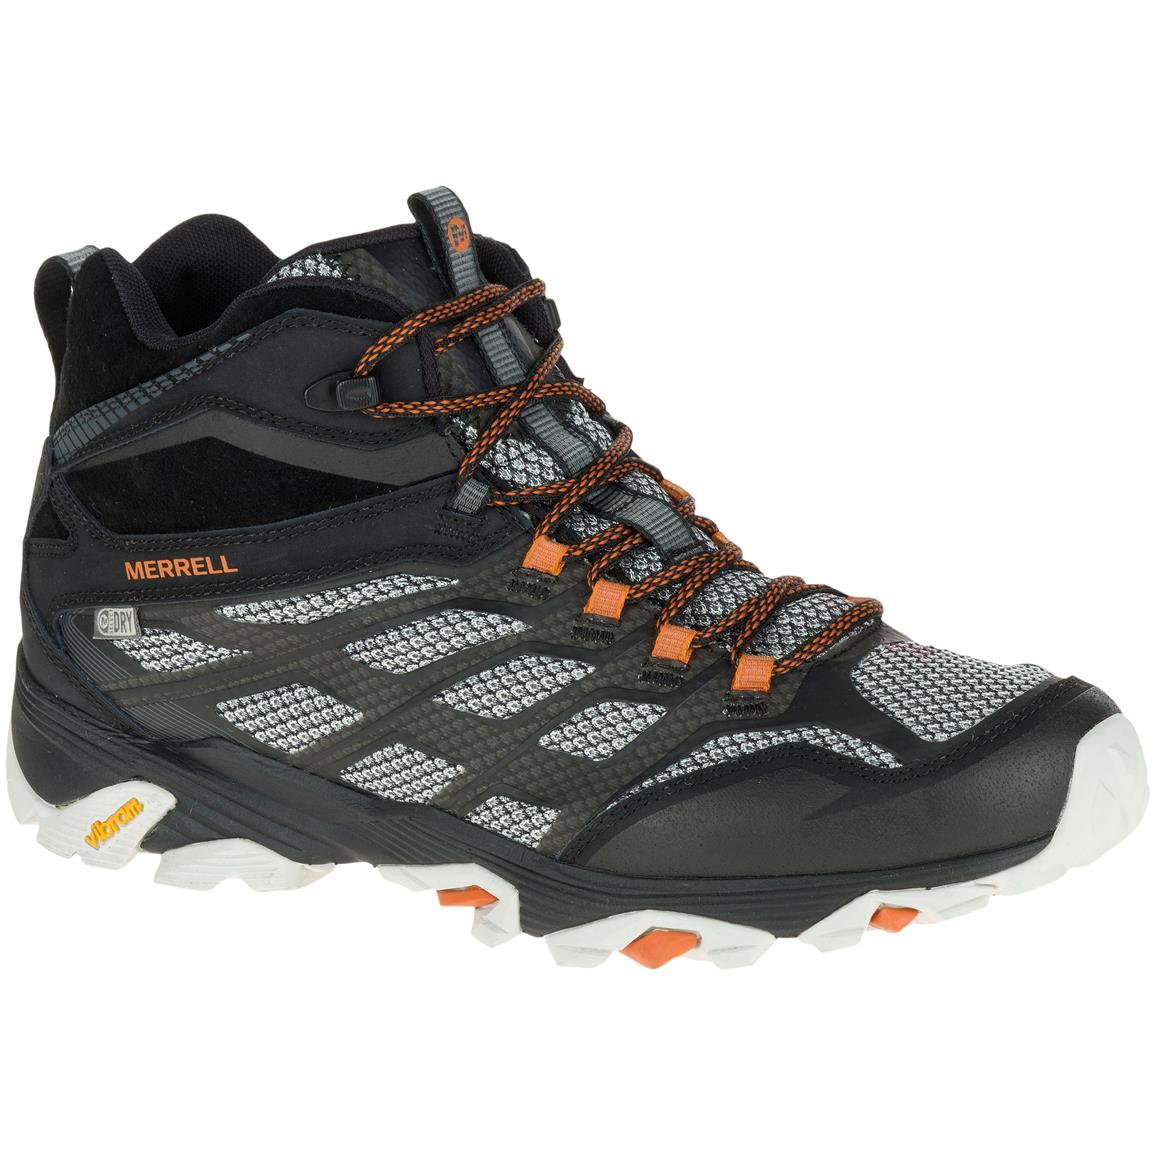 Merrell Men's Moab FST Mid Waterproof Hiking Boots, Black